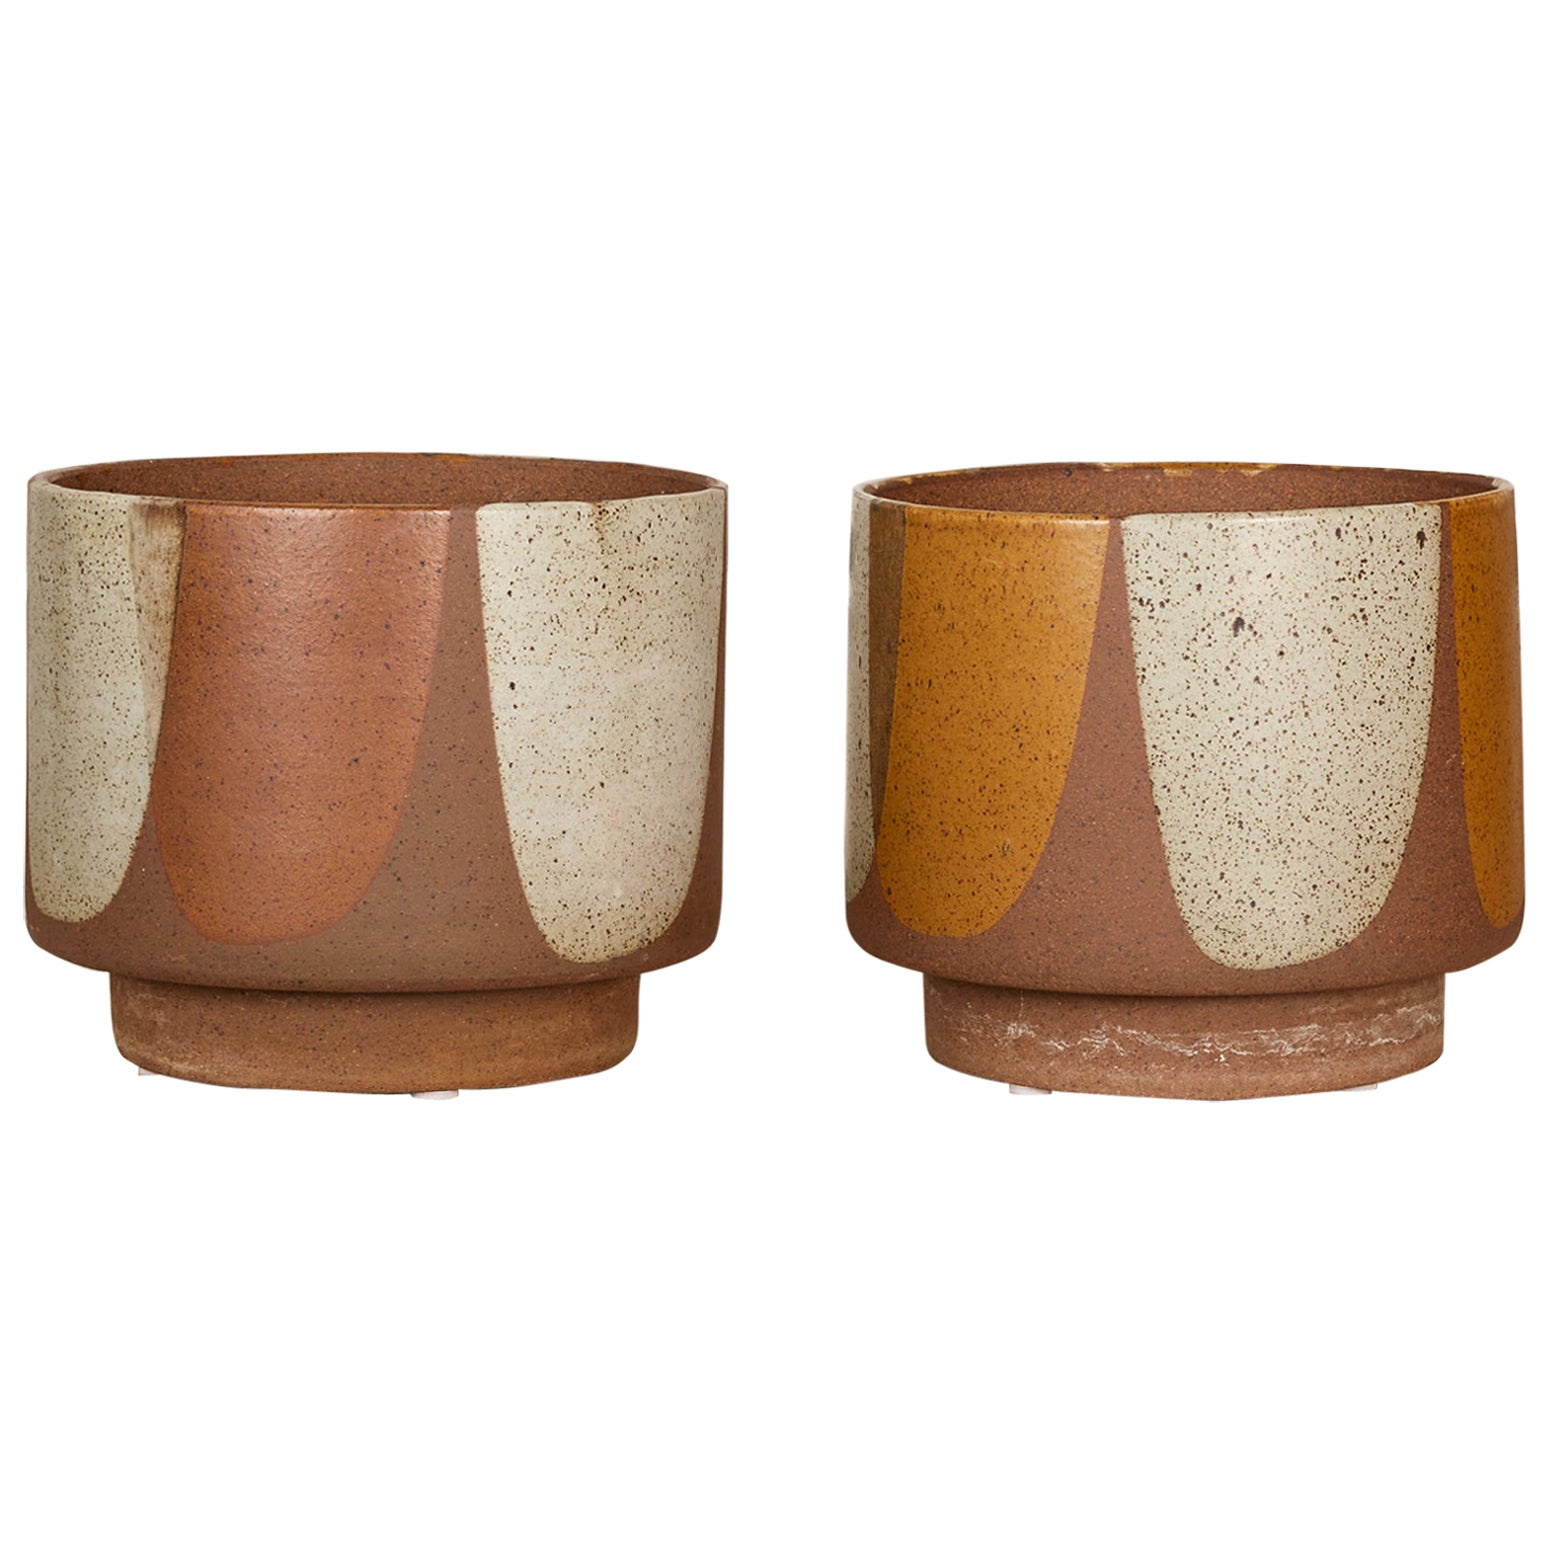 """David Cressey """"Flame-Glaze"""" Pro/Artisan Planters for Architectural Pottery, Pair"""